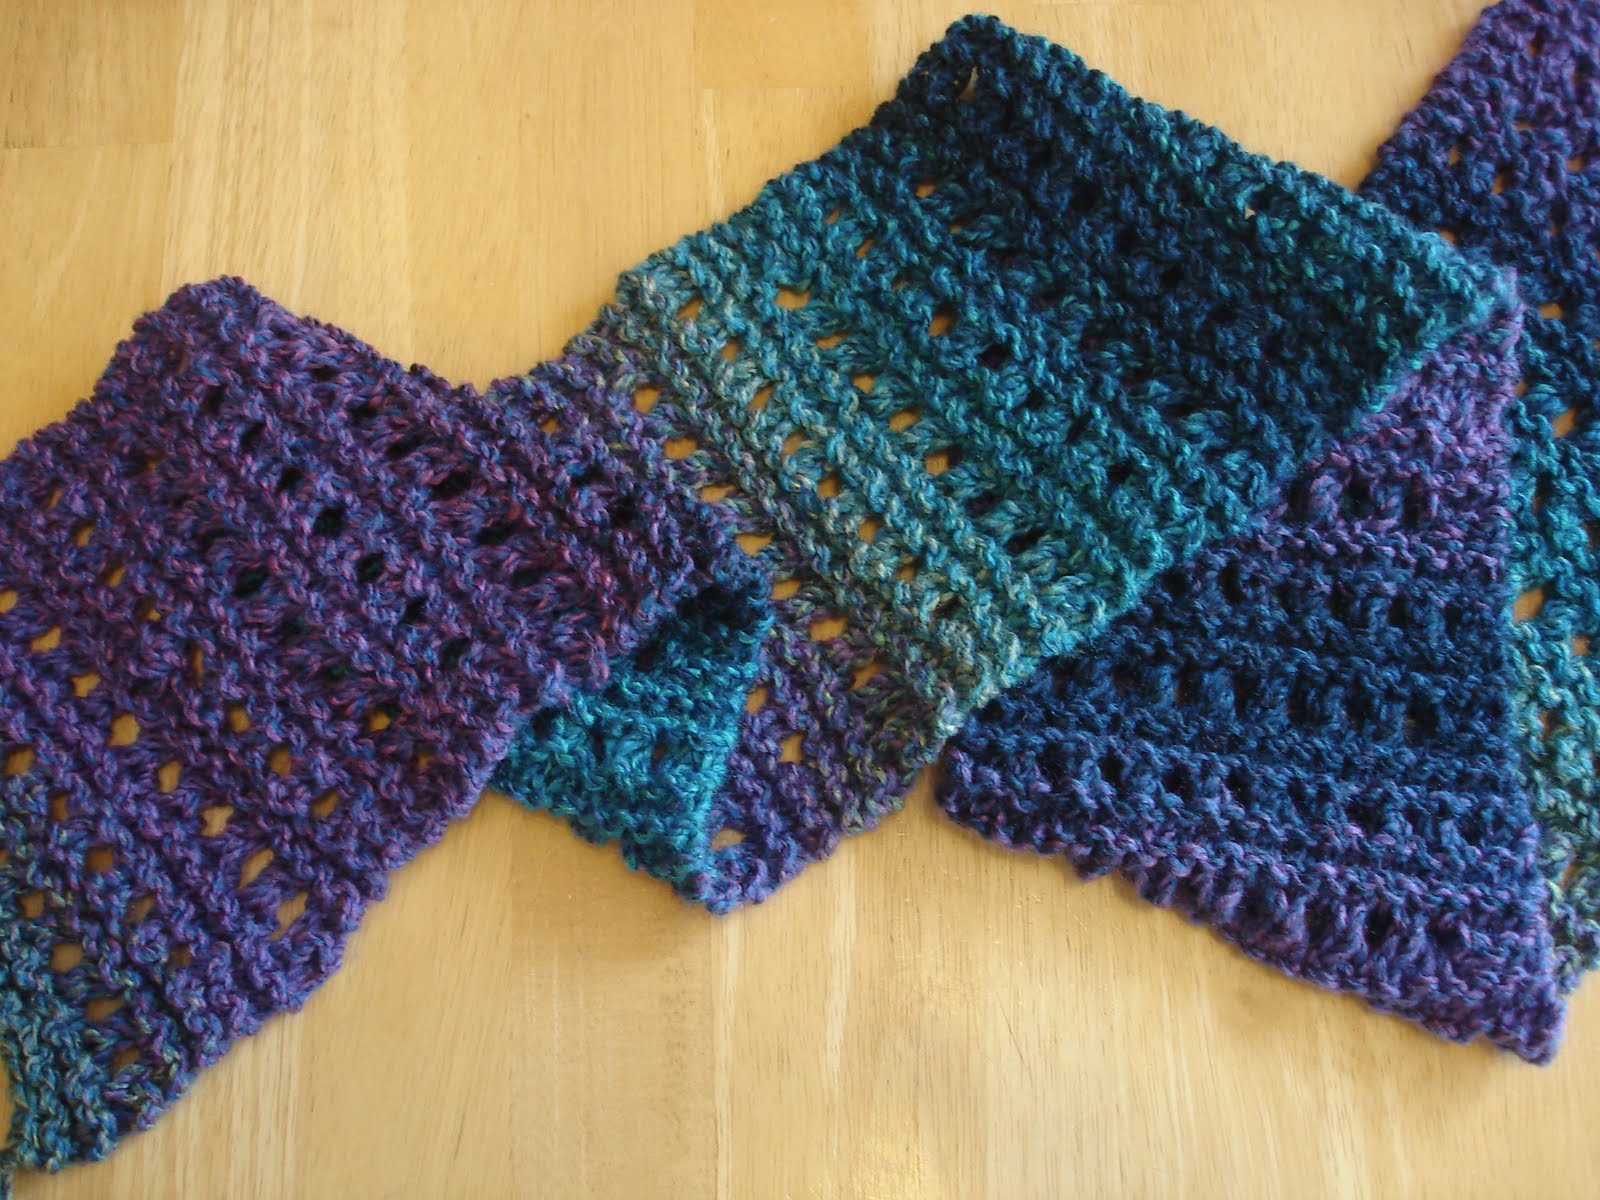 Crochet Stitches Good For Scarves : Fiber Flux: Free Knitting Patterns